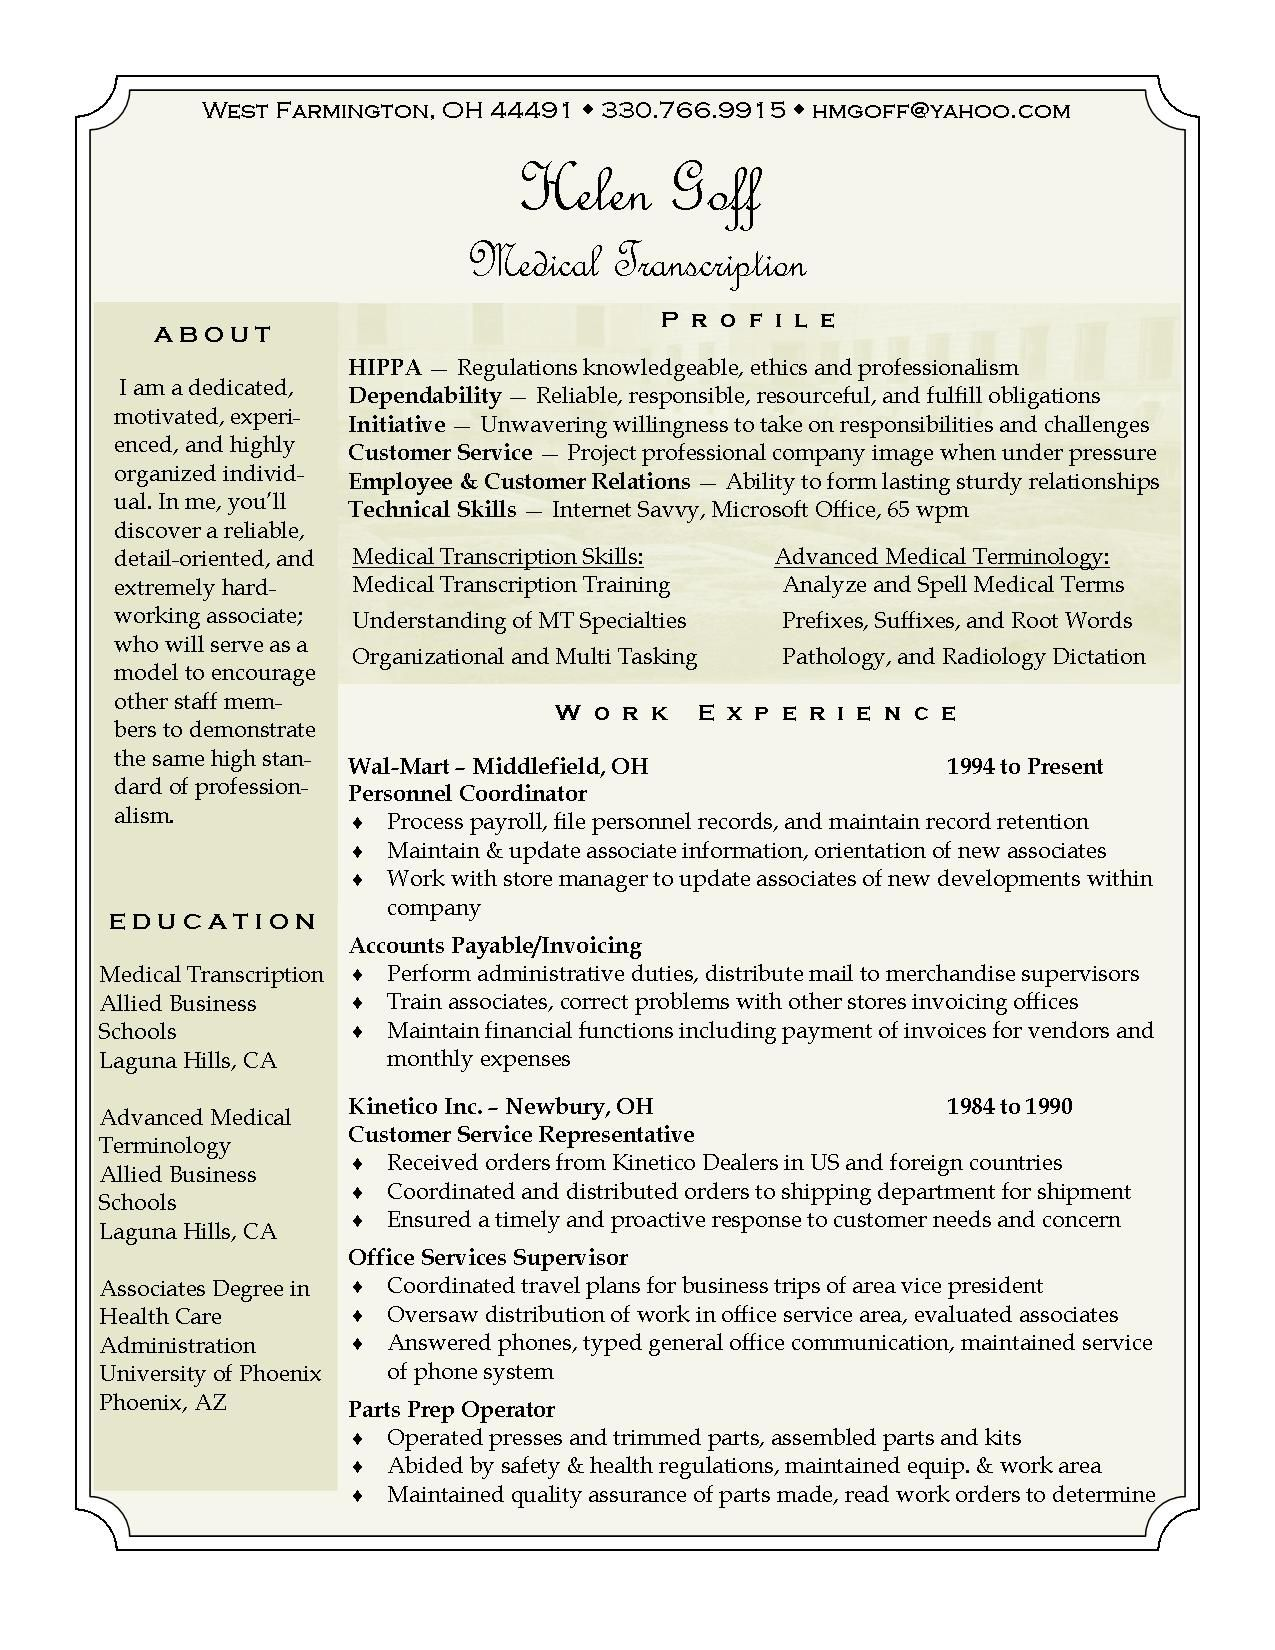 Helen Goff Resume Medical Transcription Resume Career With